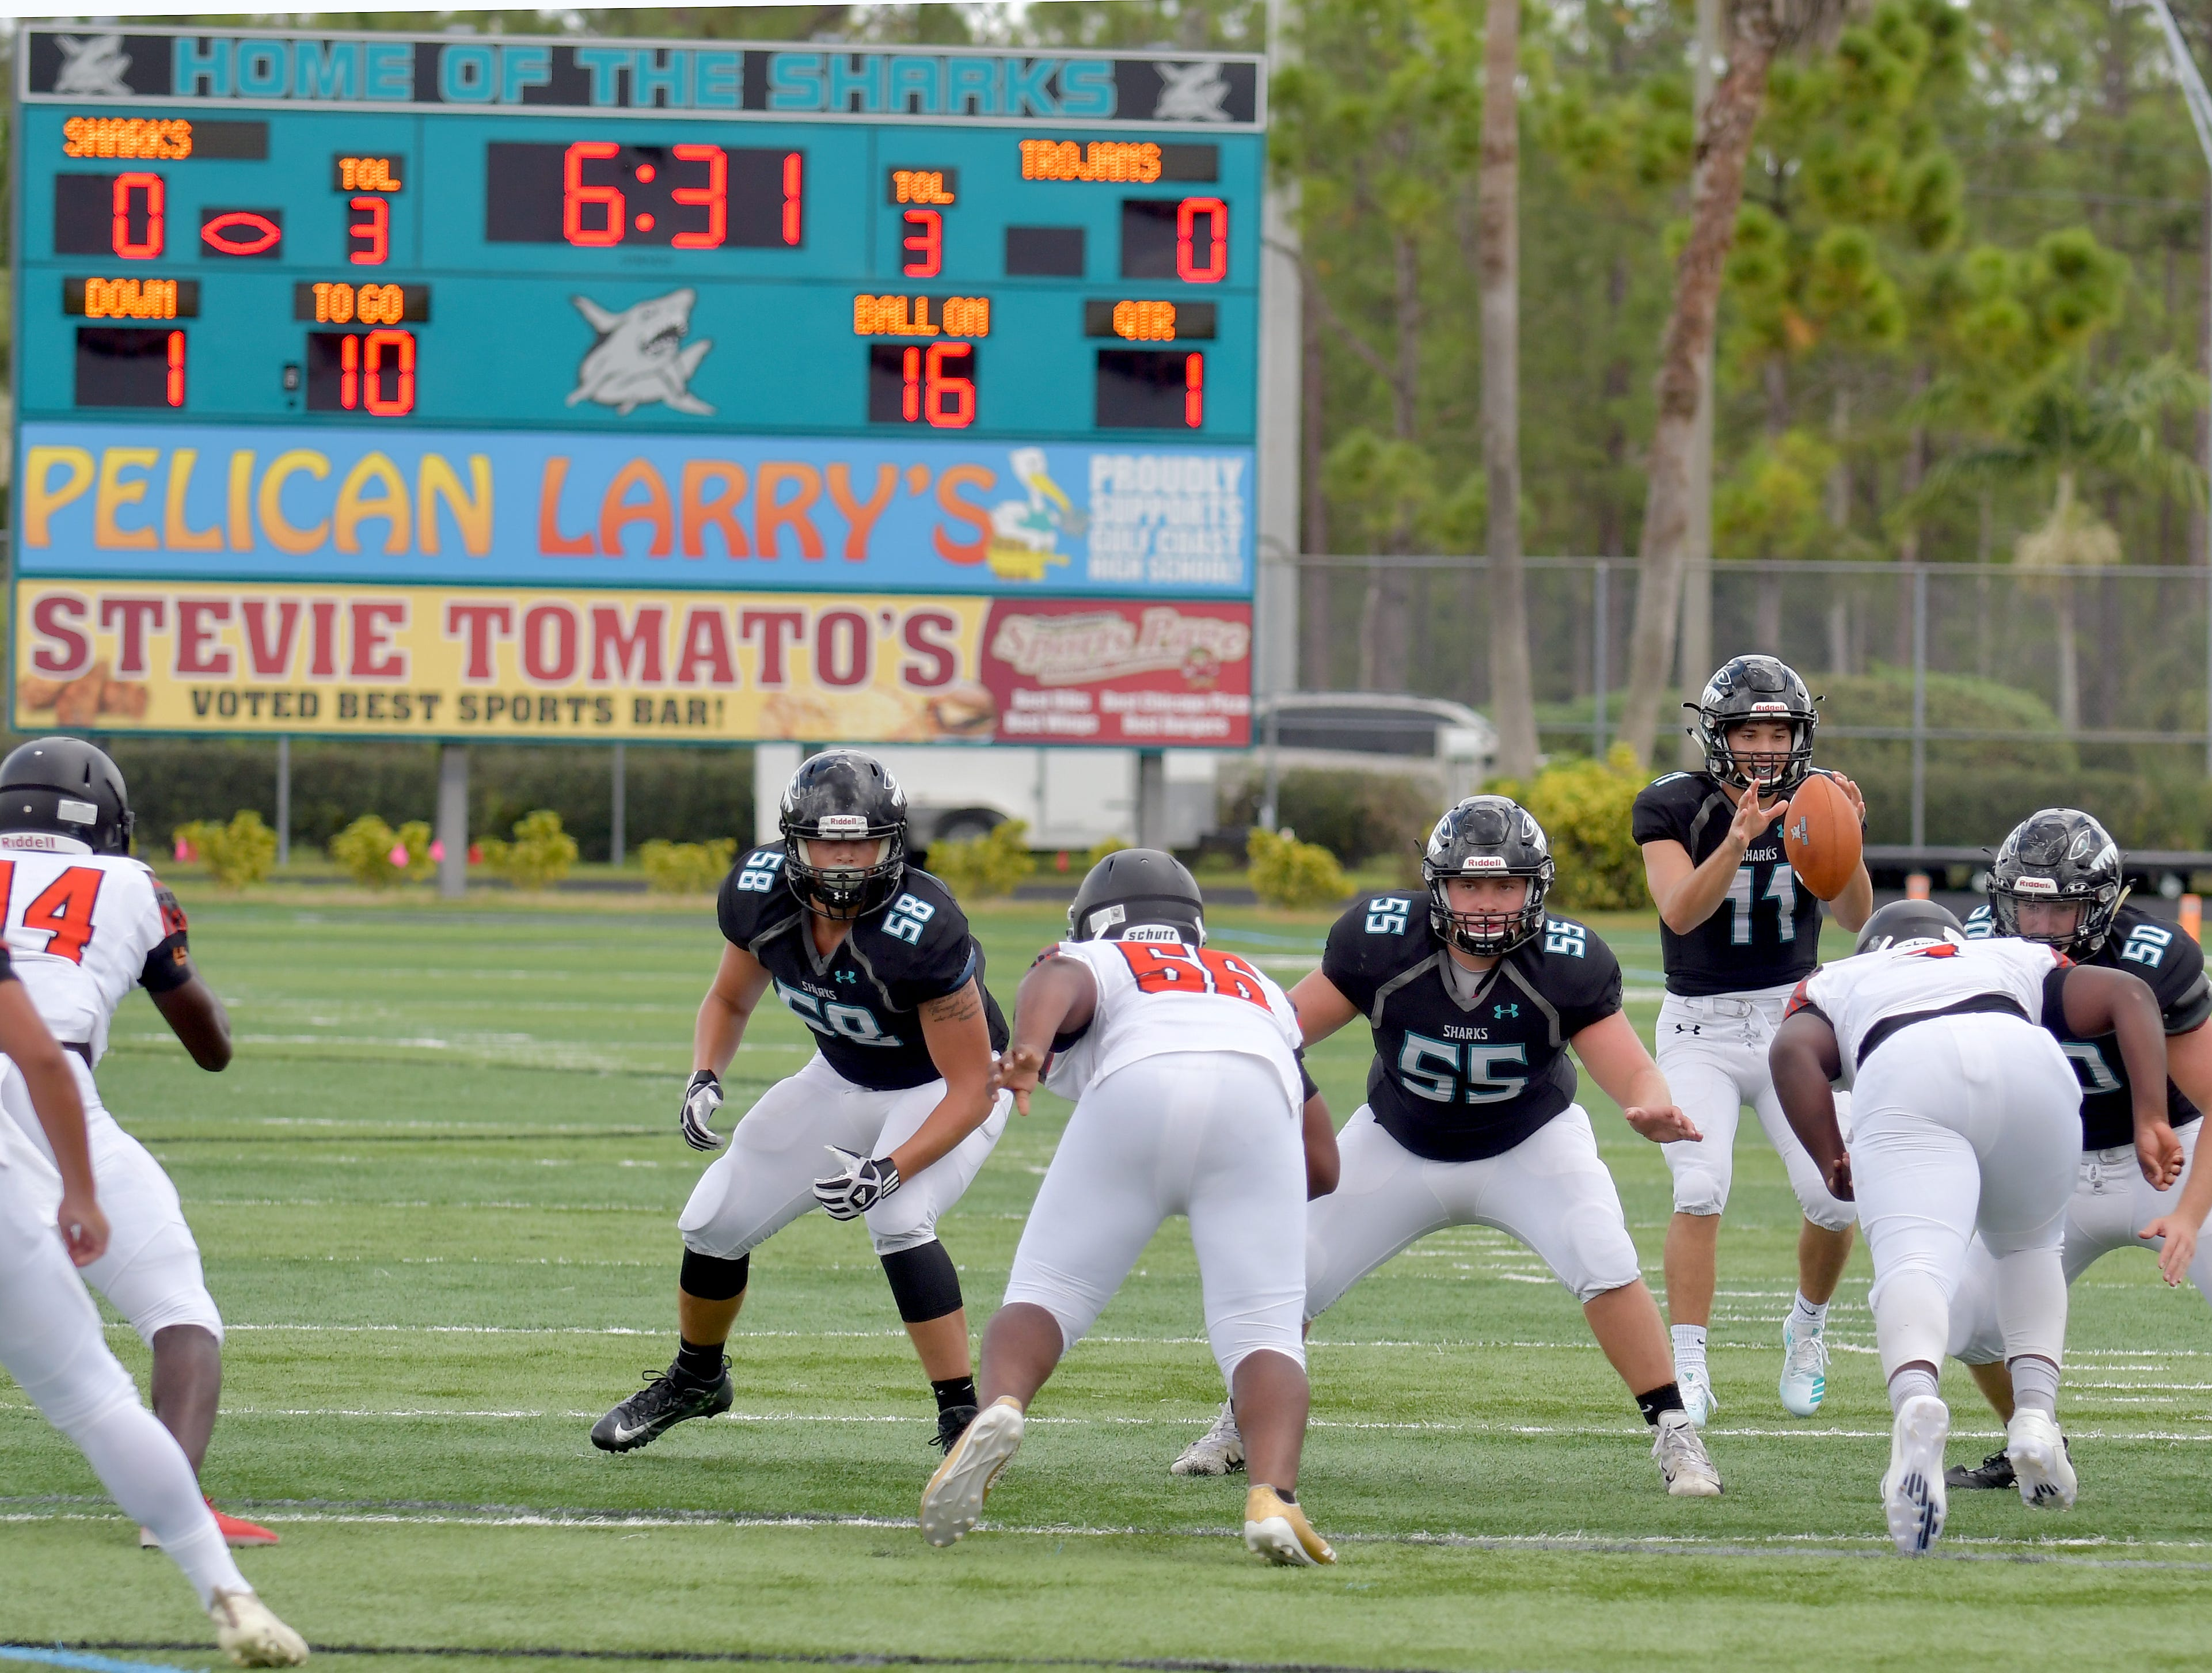 Gulf Coast High School during their game with Lely High School in Naples, on Saturday, Aug. 25, 2018.